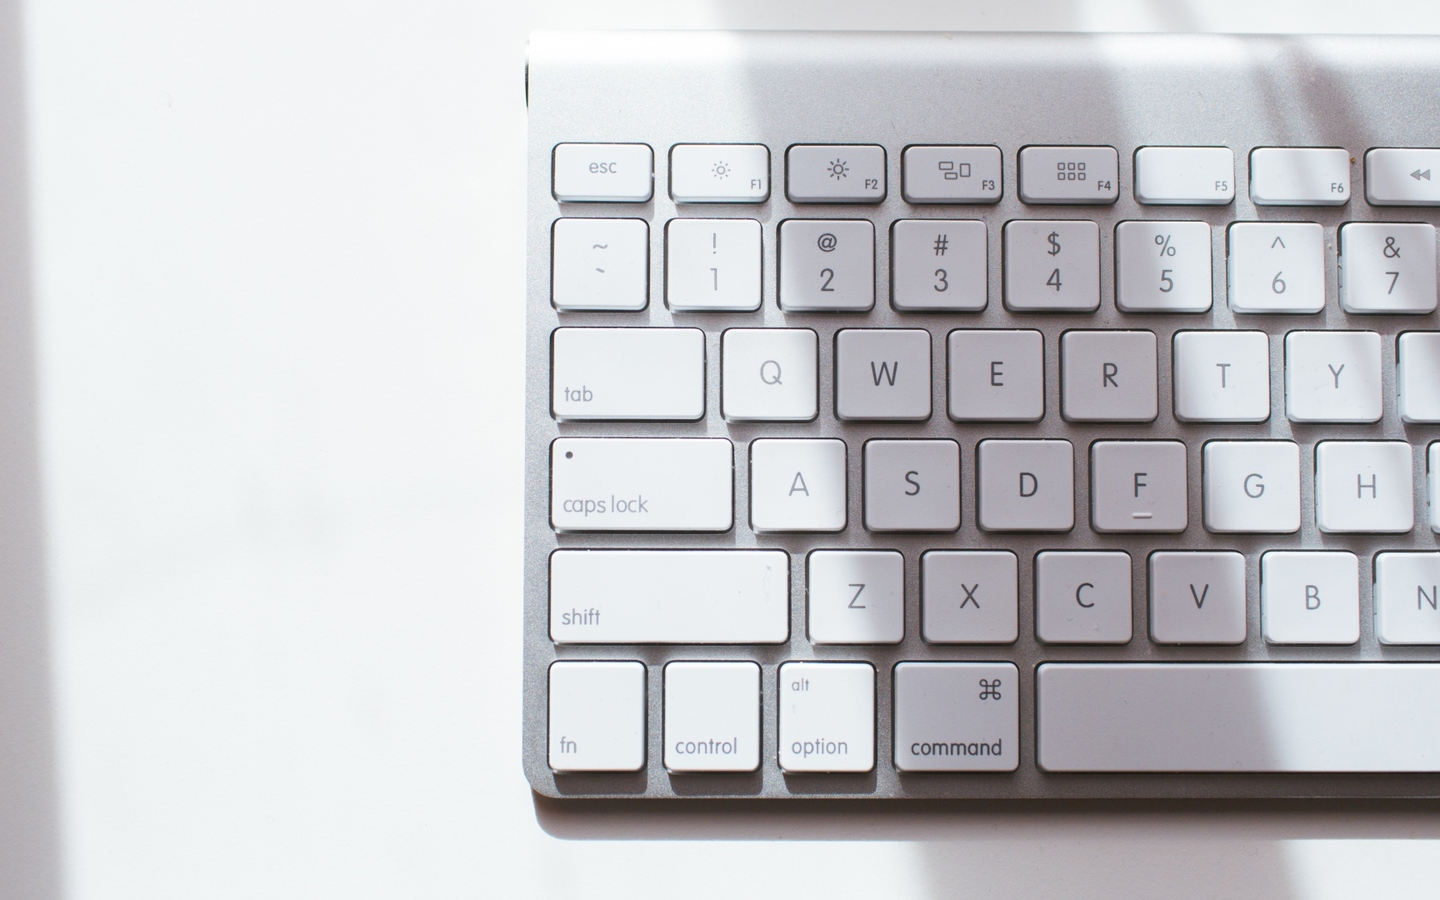 1440x900 Apple Keyboard 1440x900 Resolution Hd 4k Wallpapers Images Backgrounds Photos And Pictures